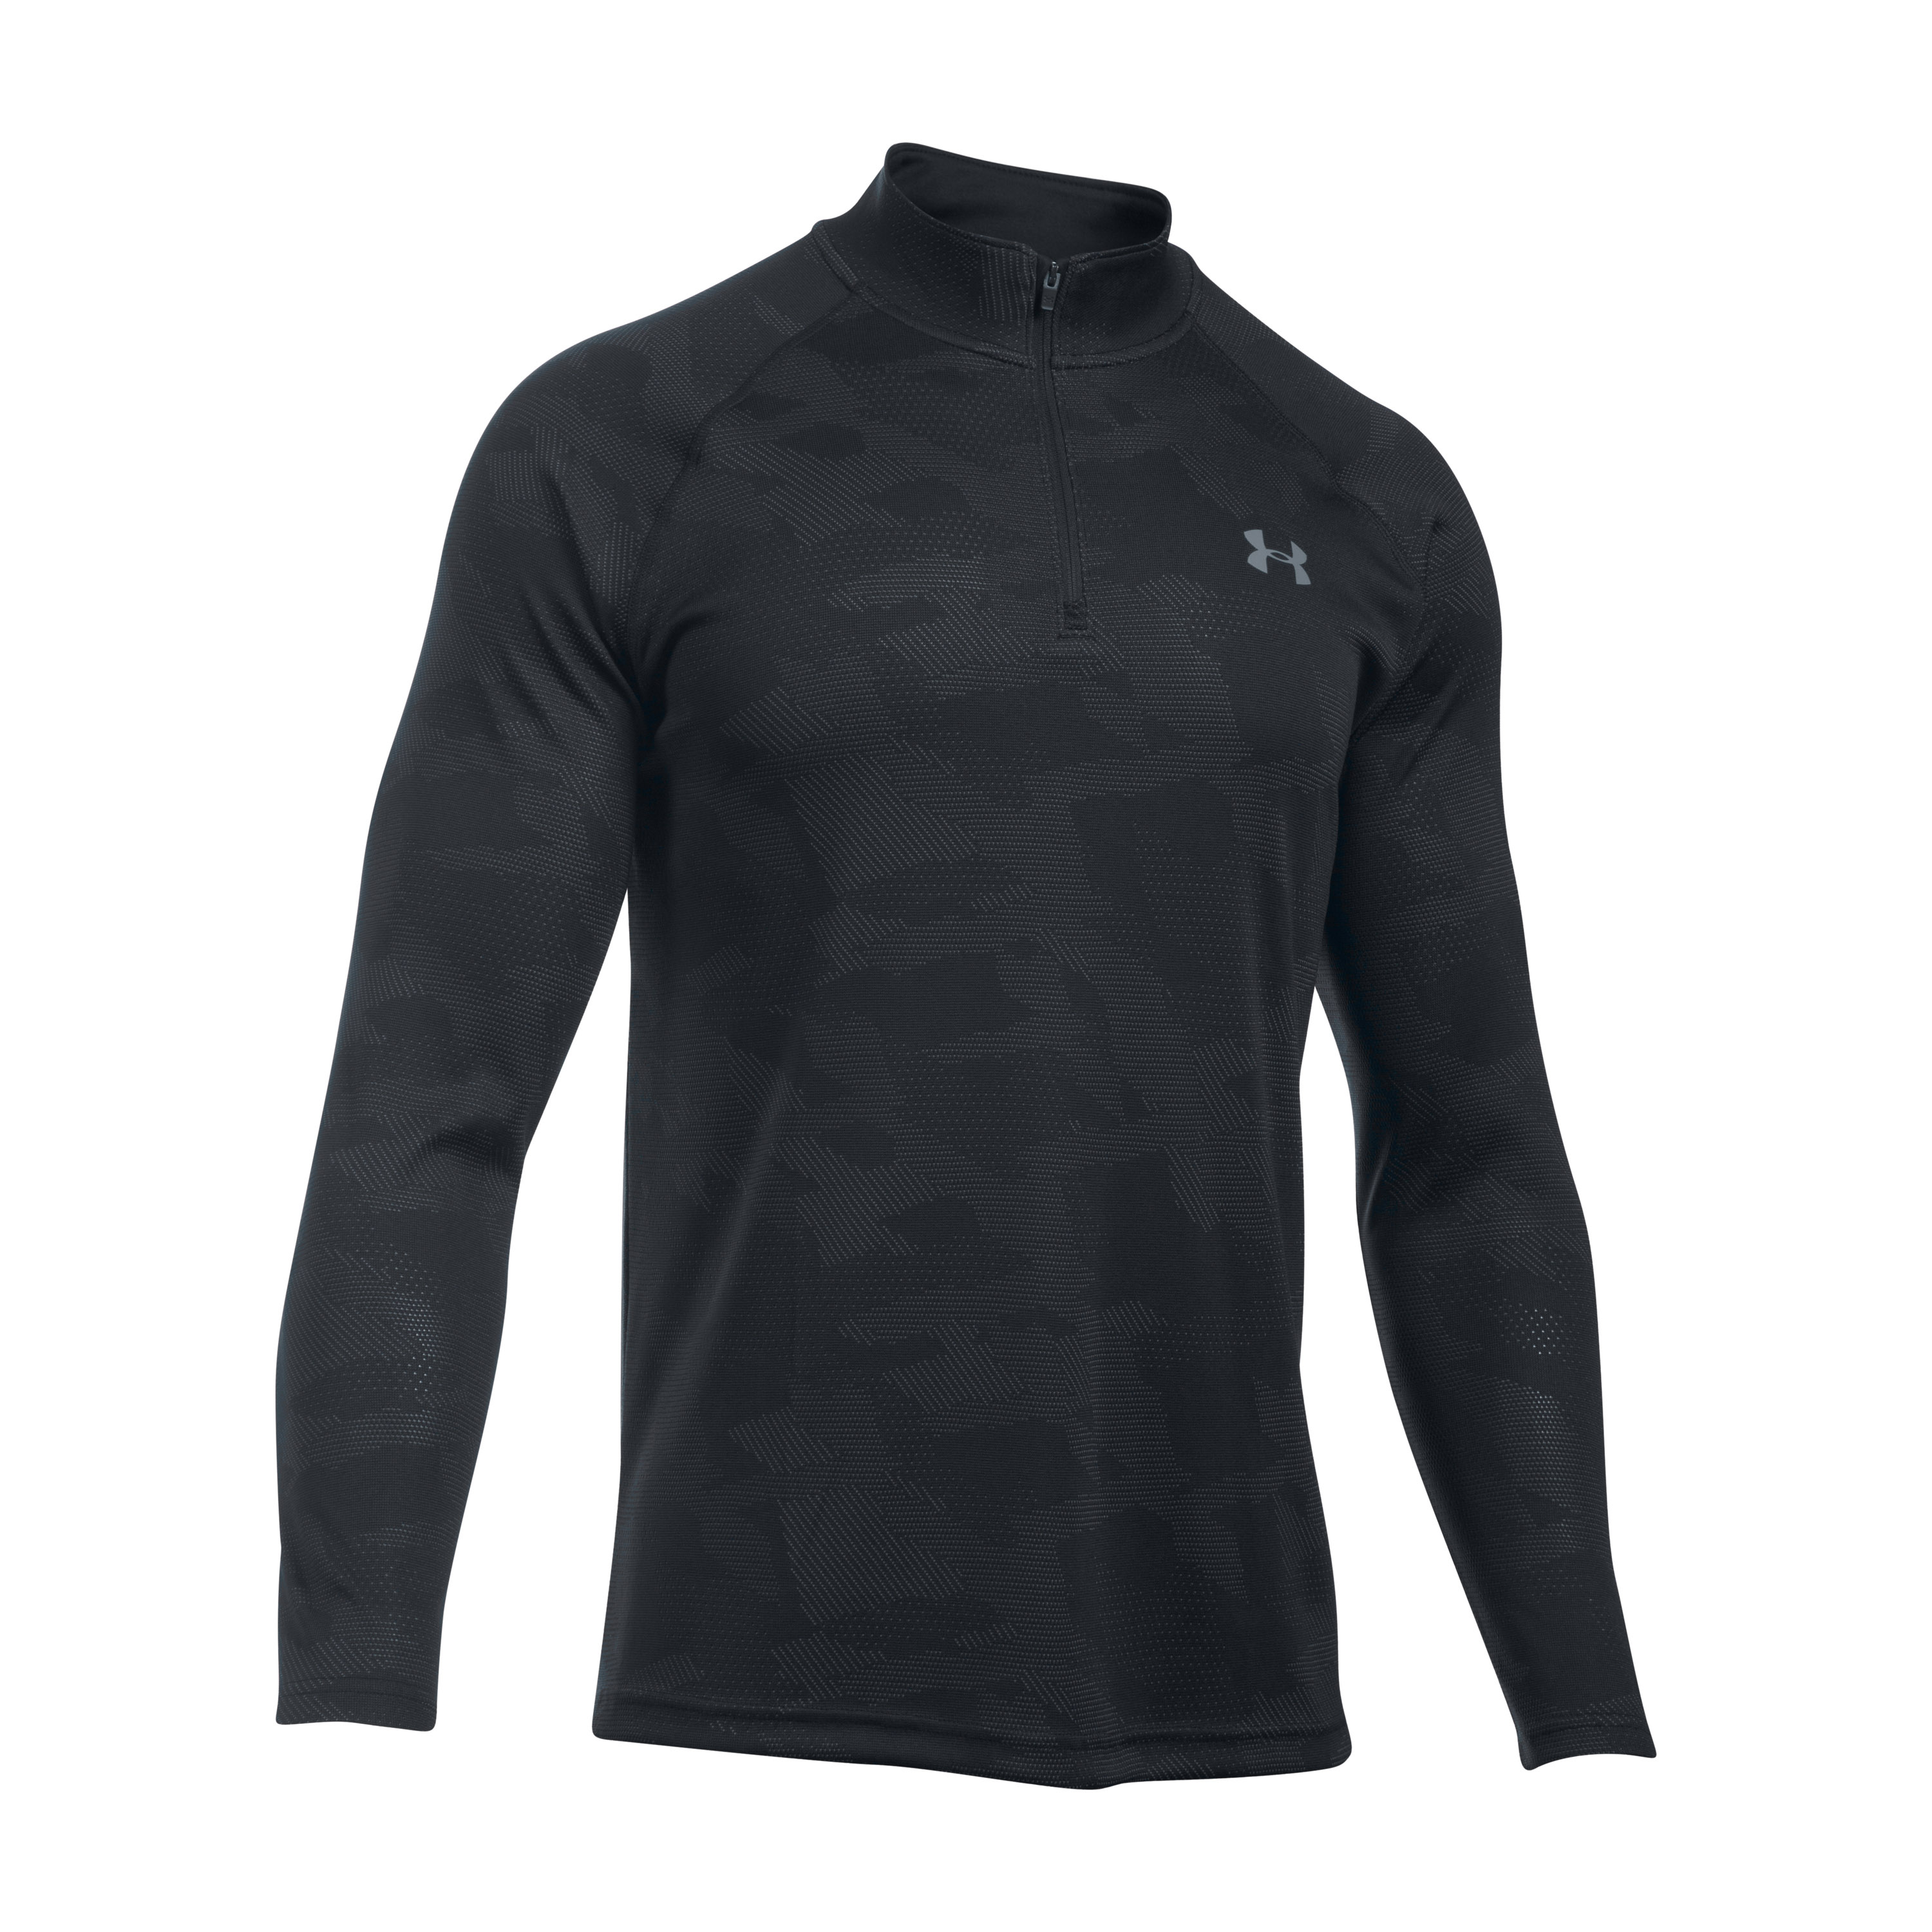 Under Armour Langarmshirt Tech Jacquard 1/4 Zip schwarz